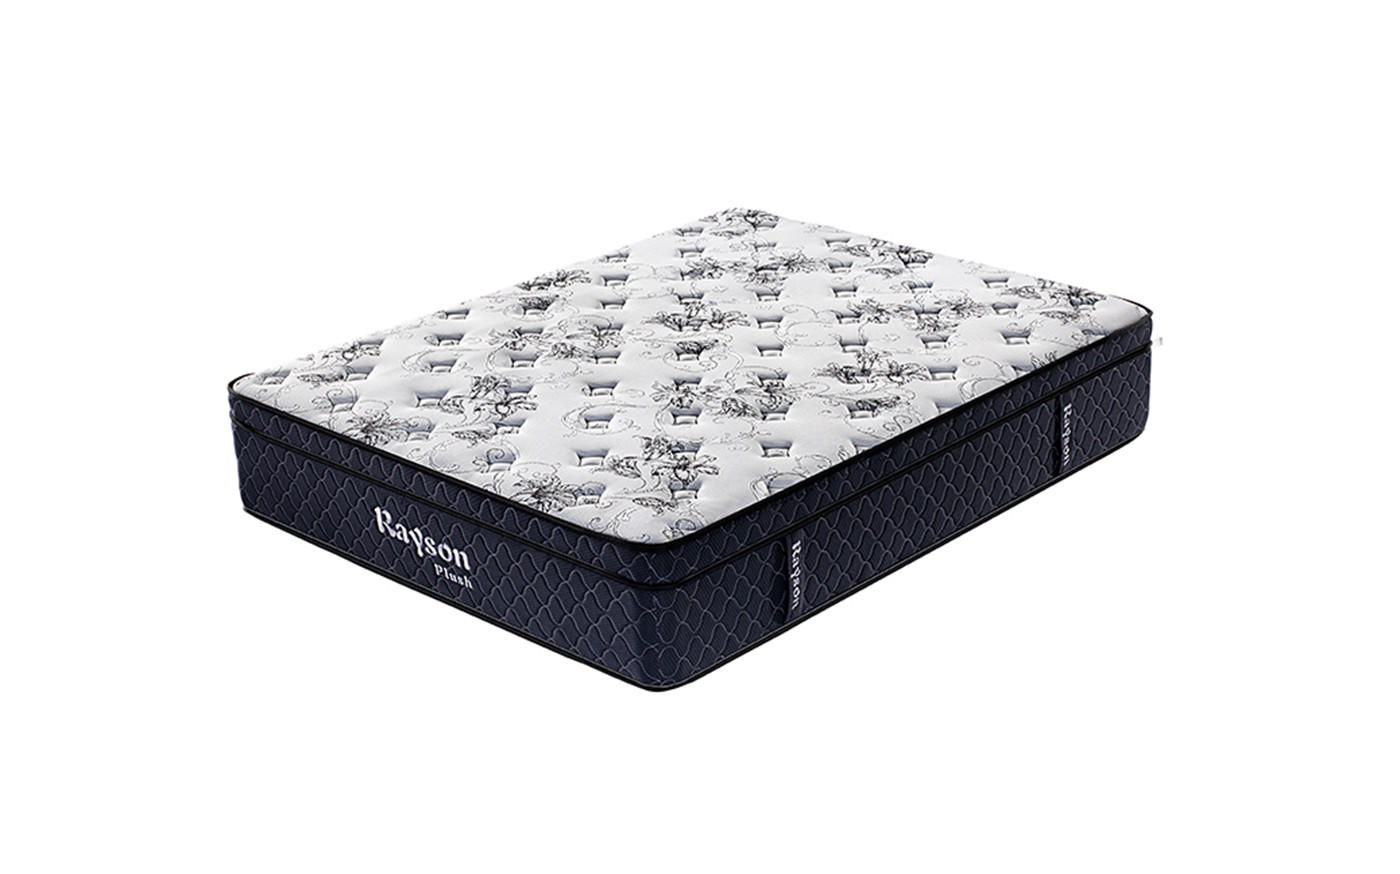 top quality hotel comfort mattress full size hotel room-1